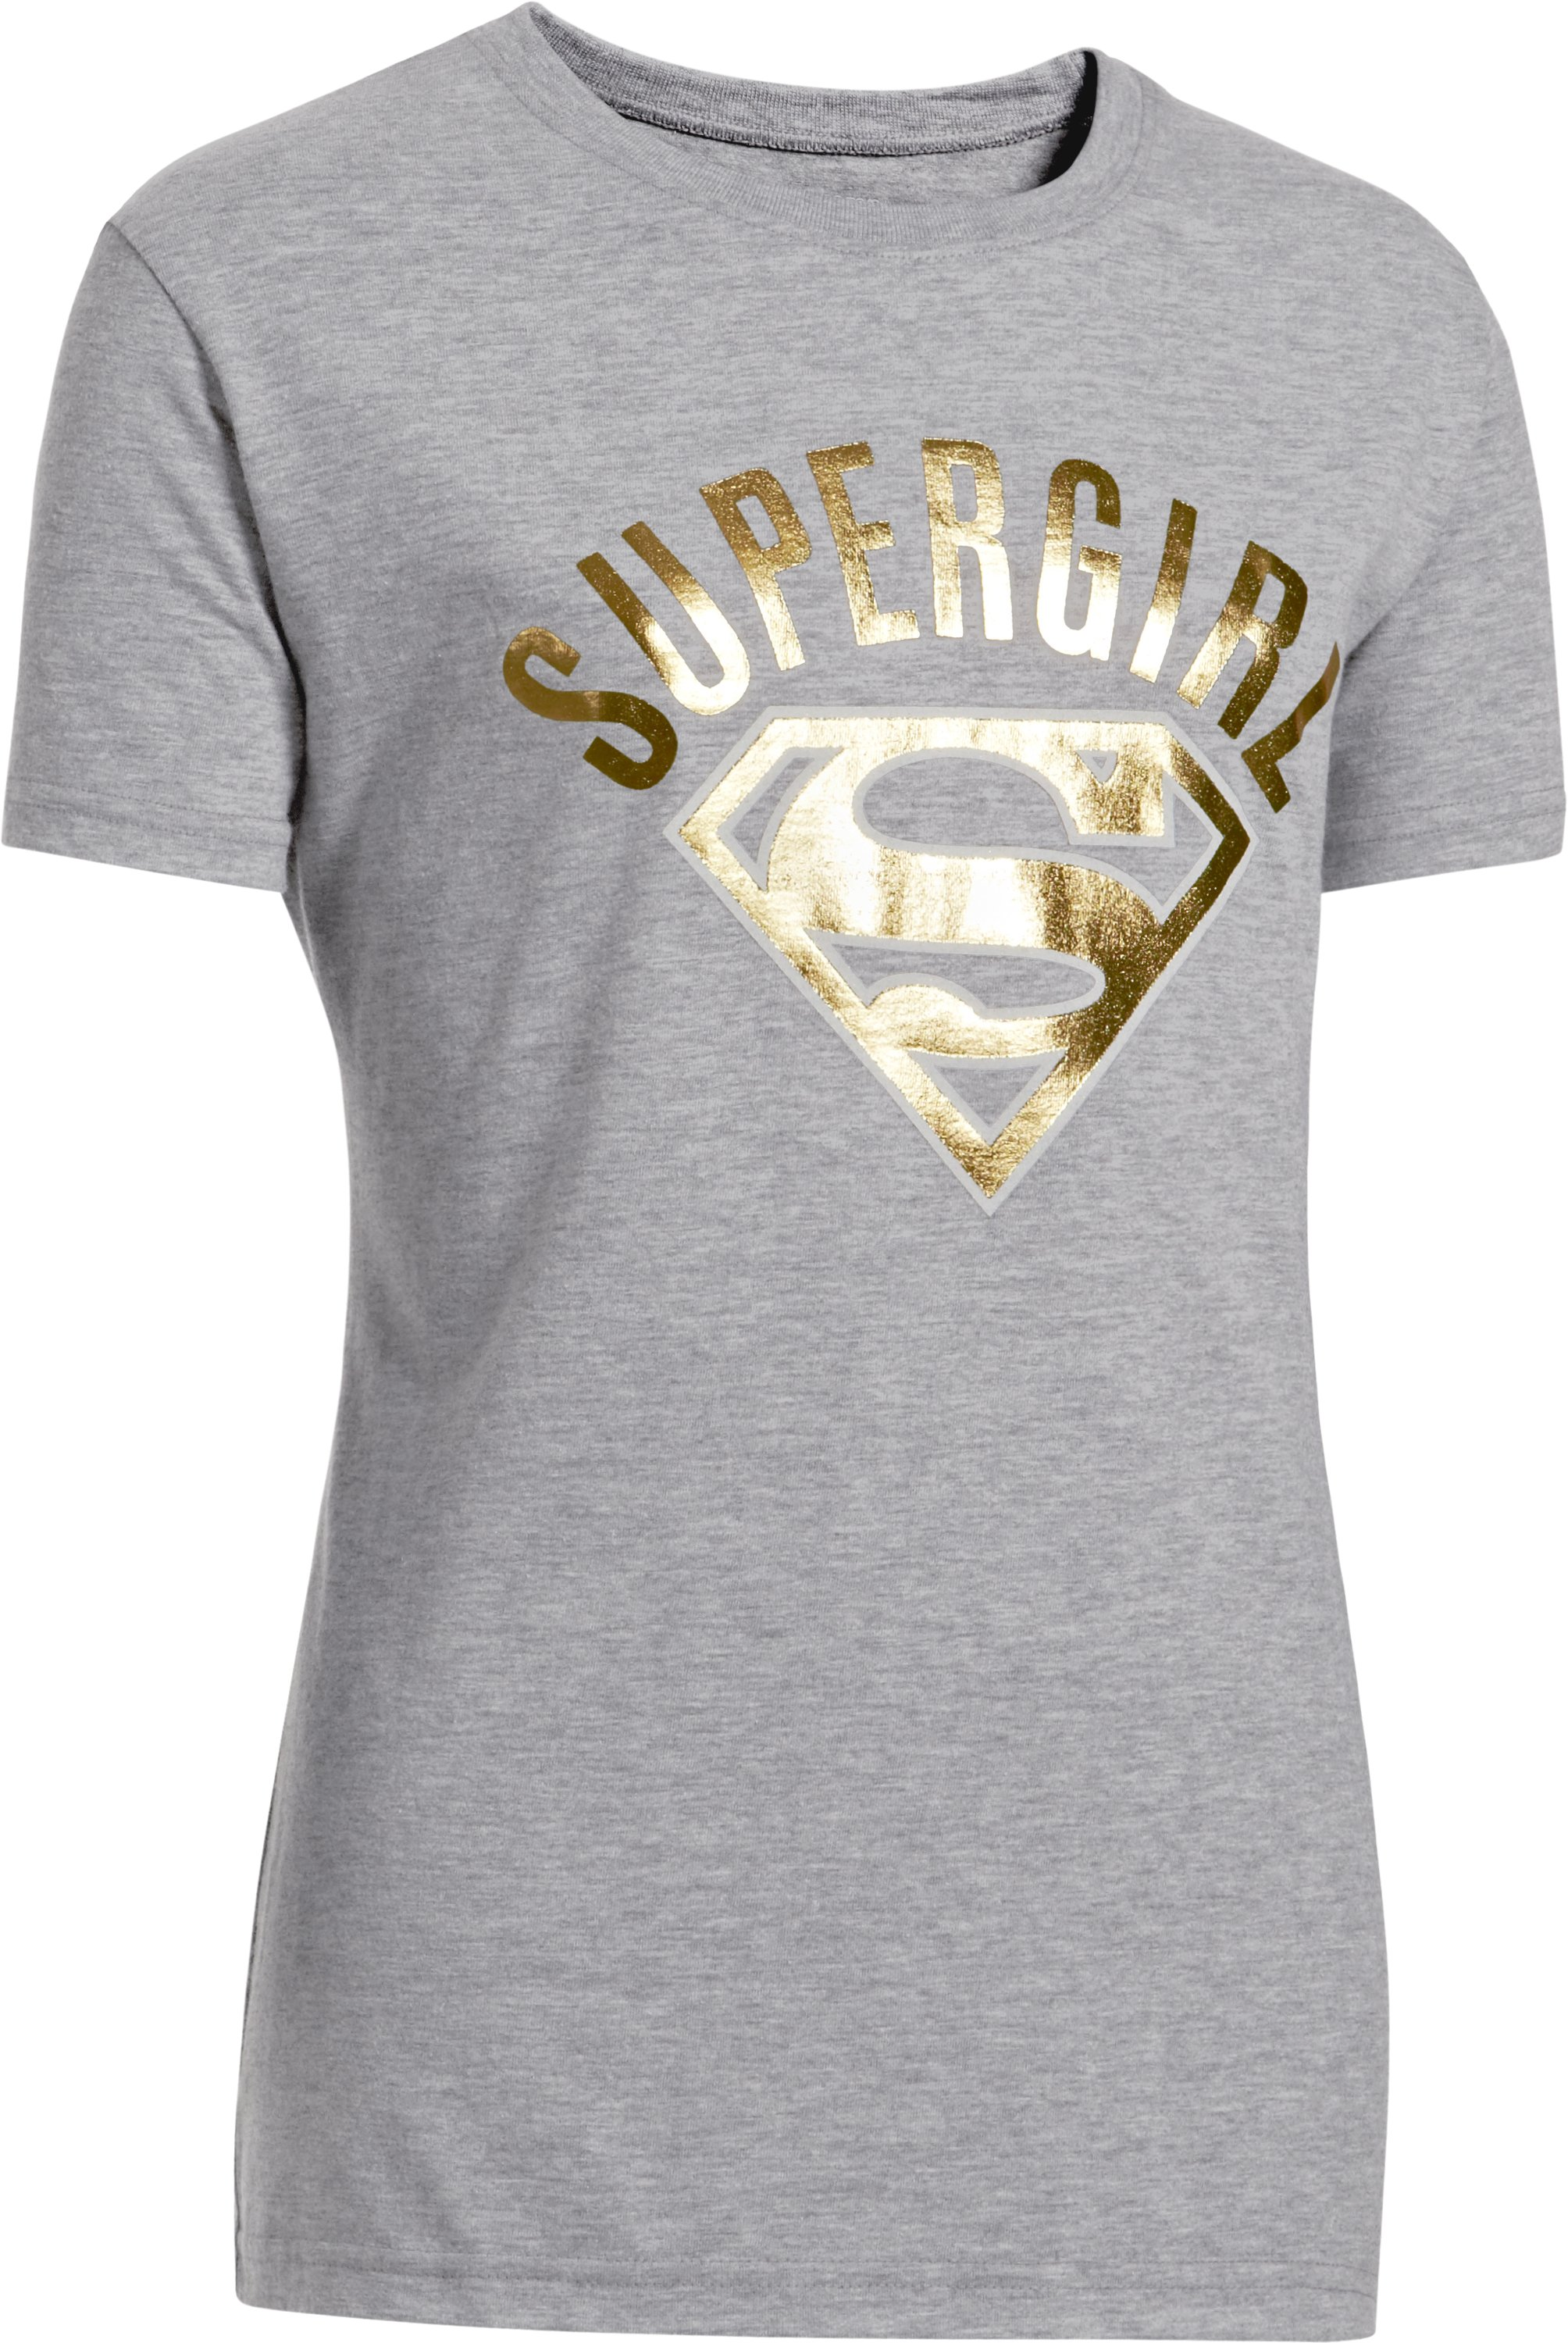 Girls' Under Armour® Alter Ego Supergirl Foil T-Shirt, True Gray Heather